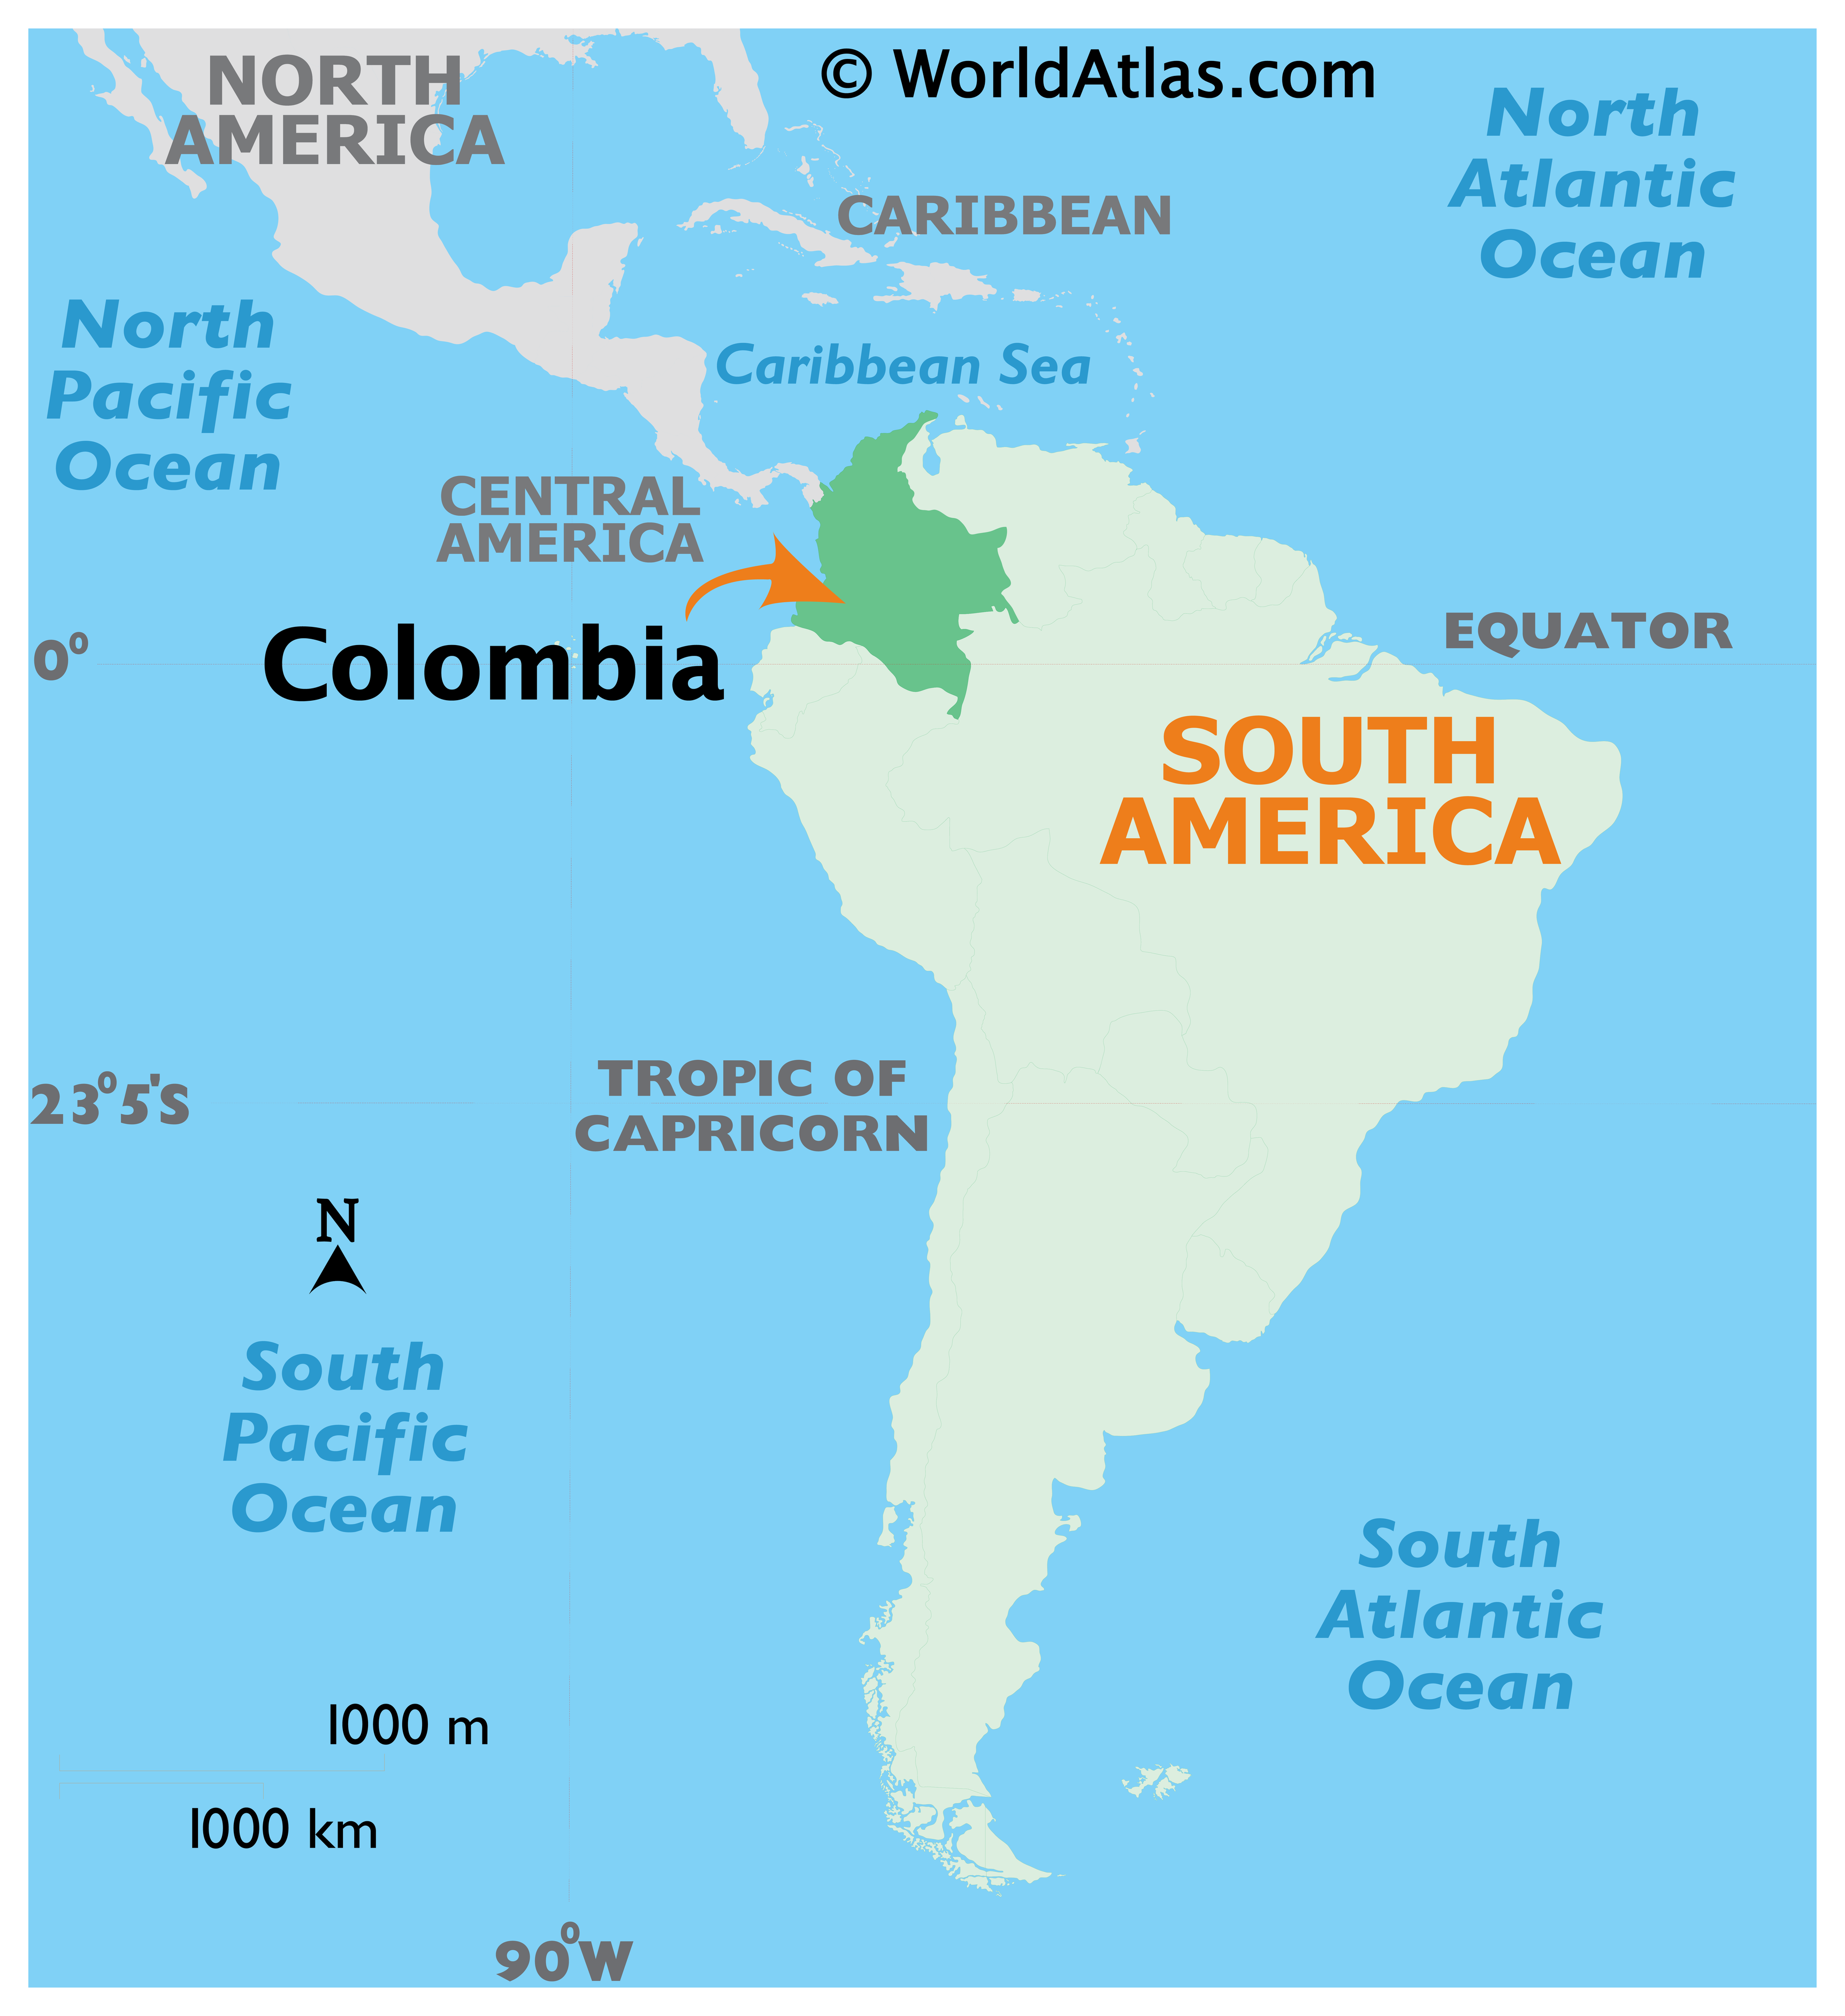 Map showing location of Colombia in the world.